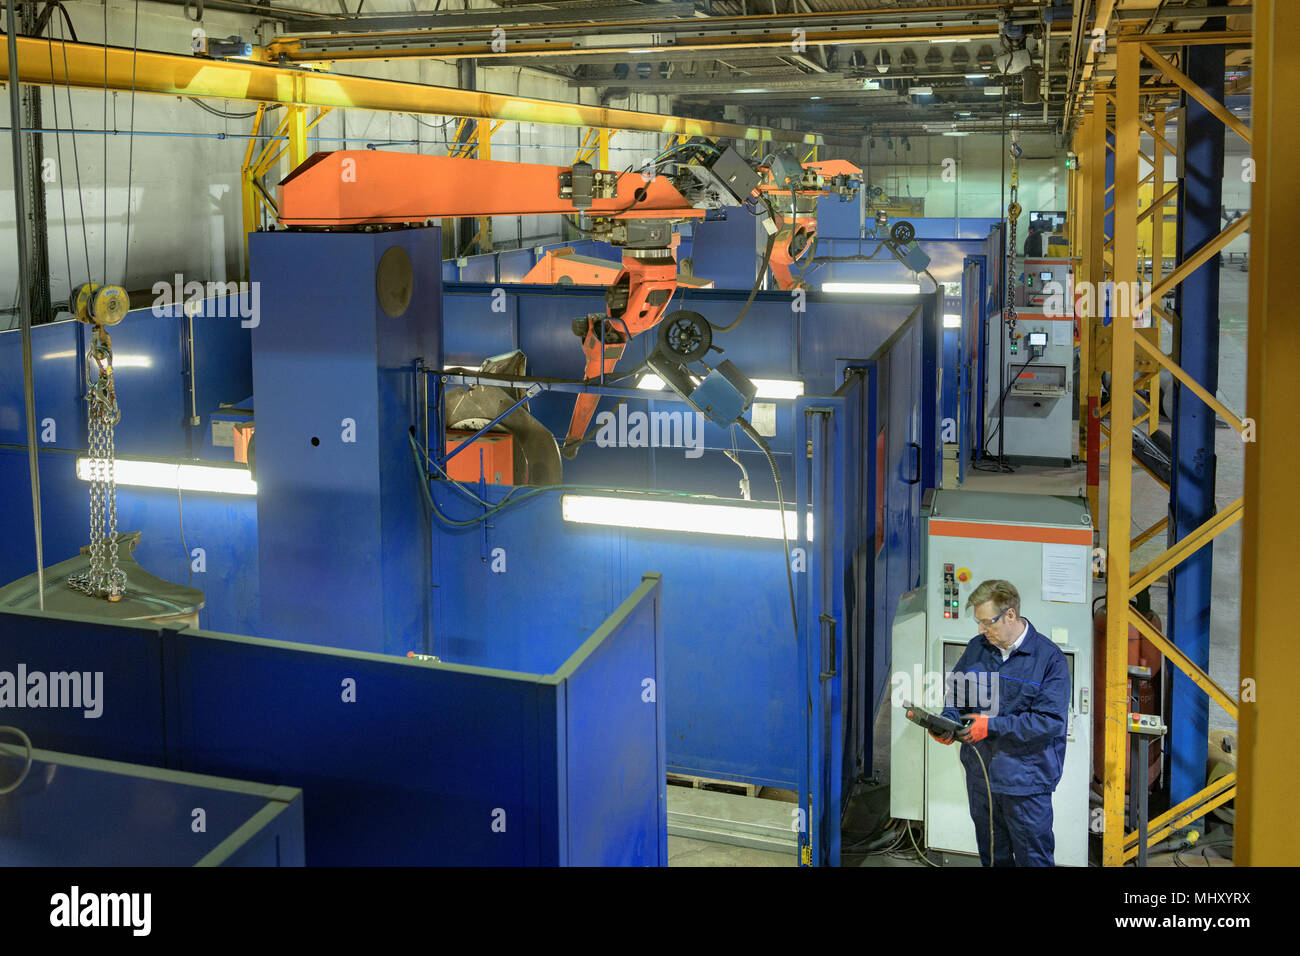 High angle view of robot welder in engineering factory - Stock Image